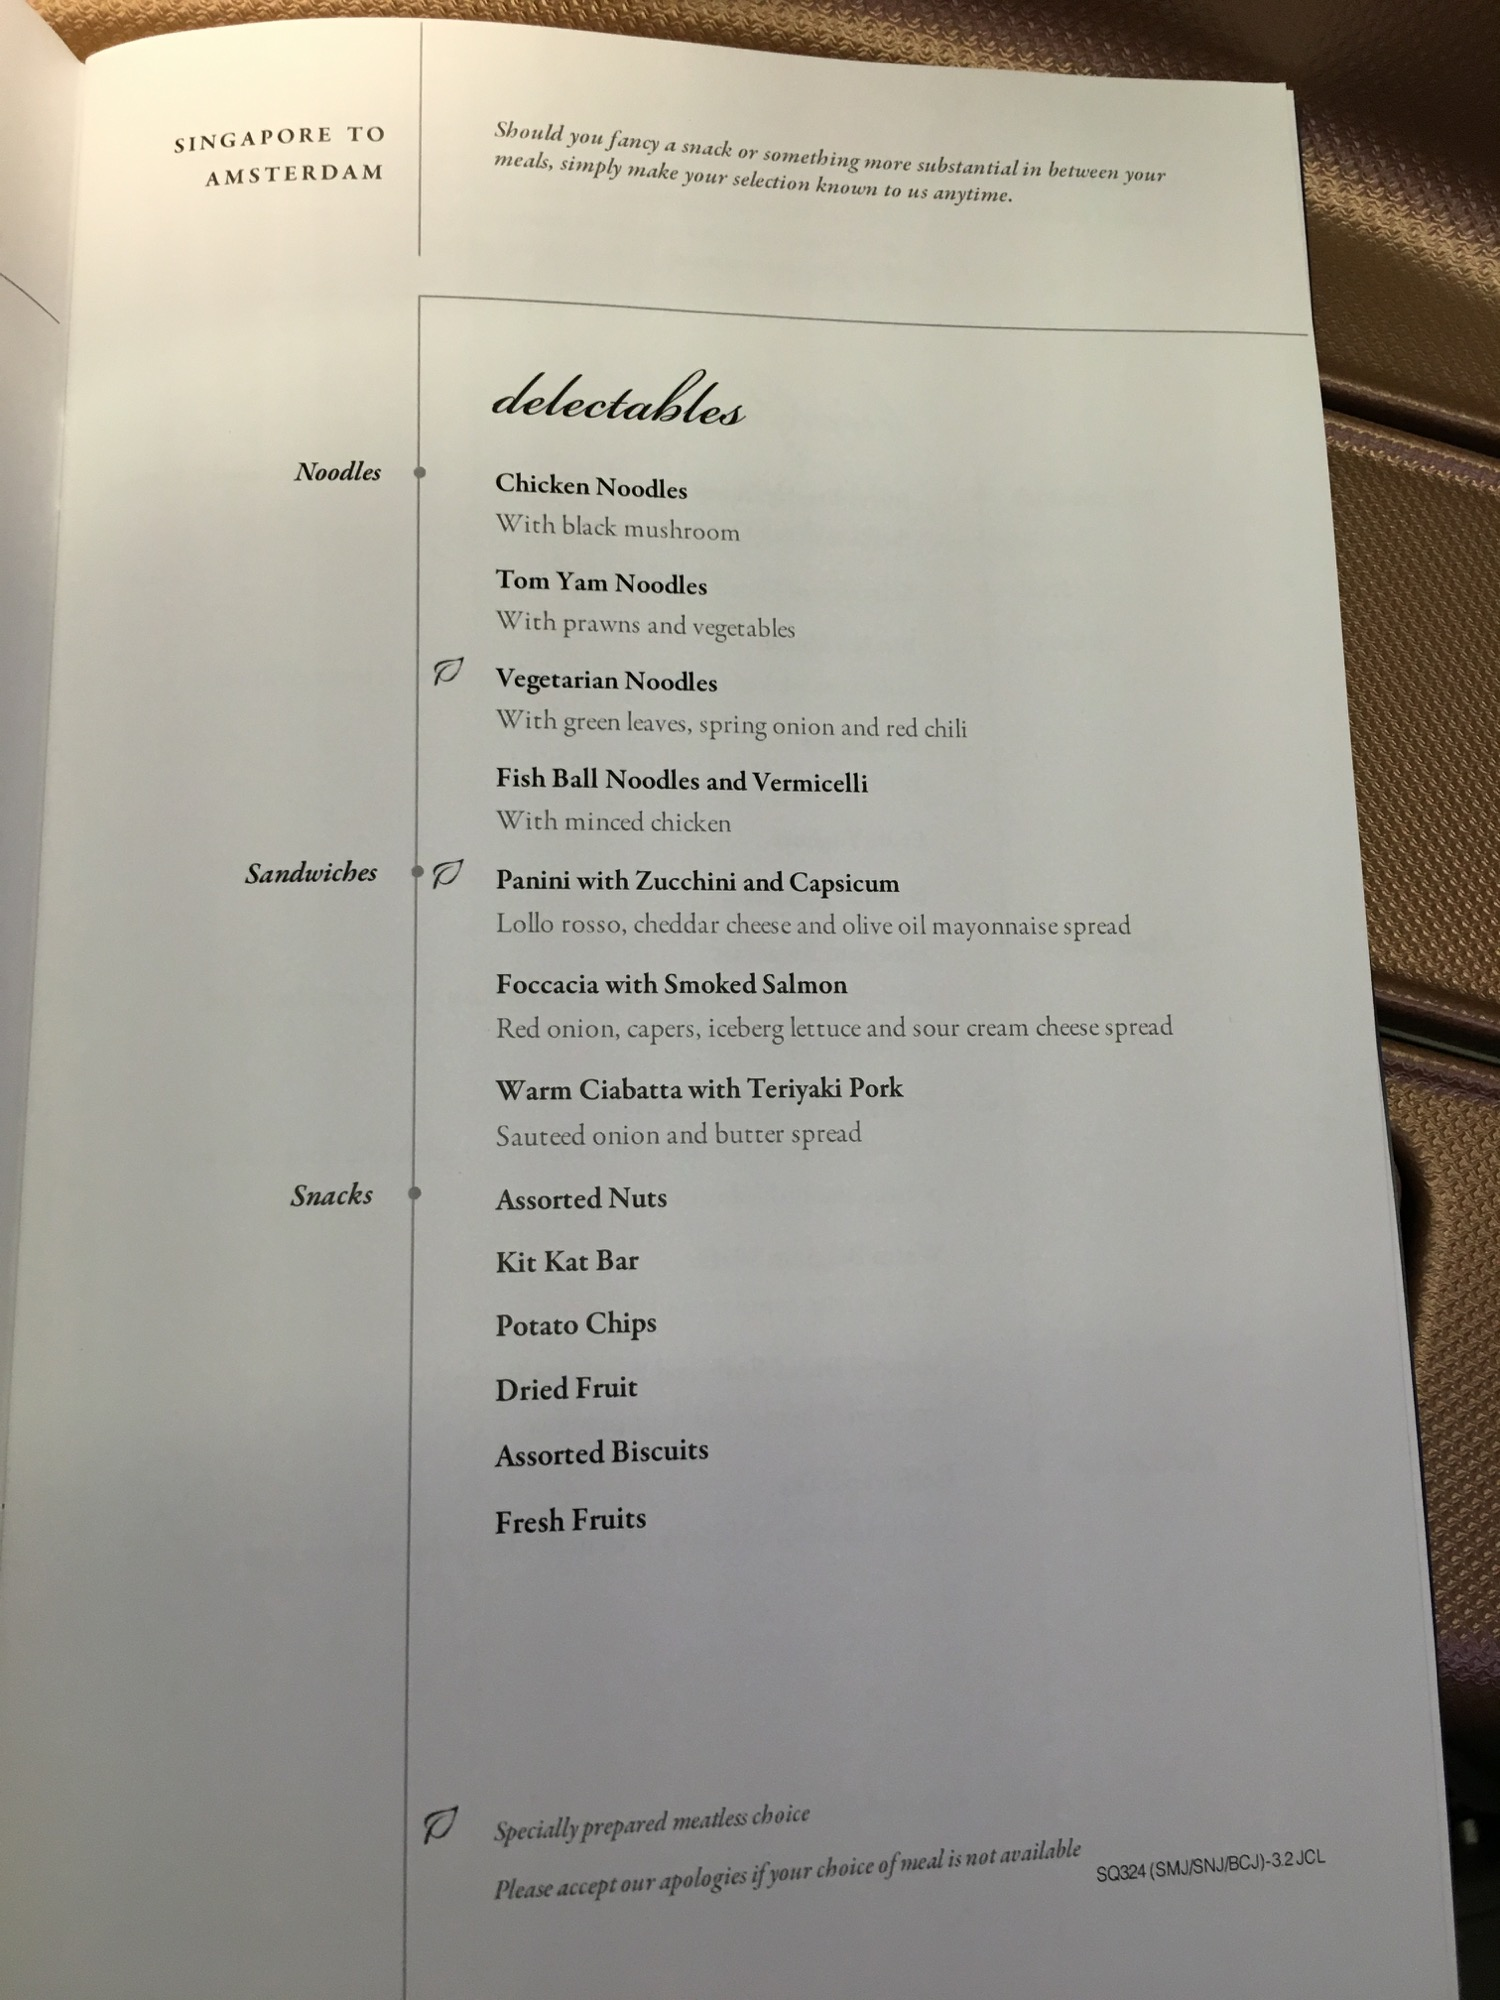 Singapore Airlines A350 Business Class Menu - 3